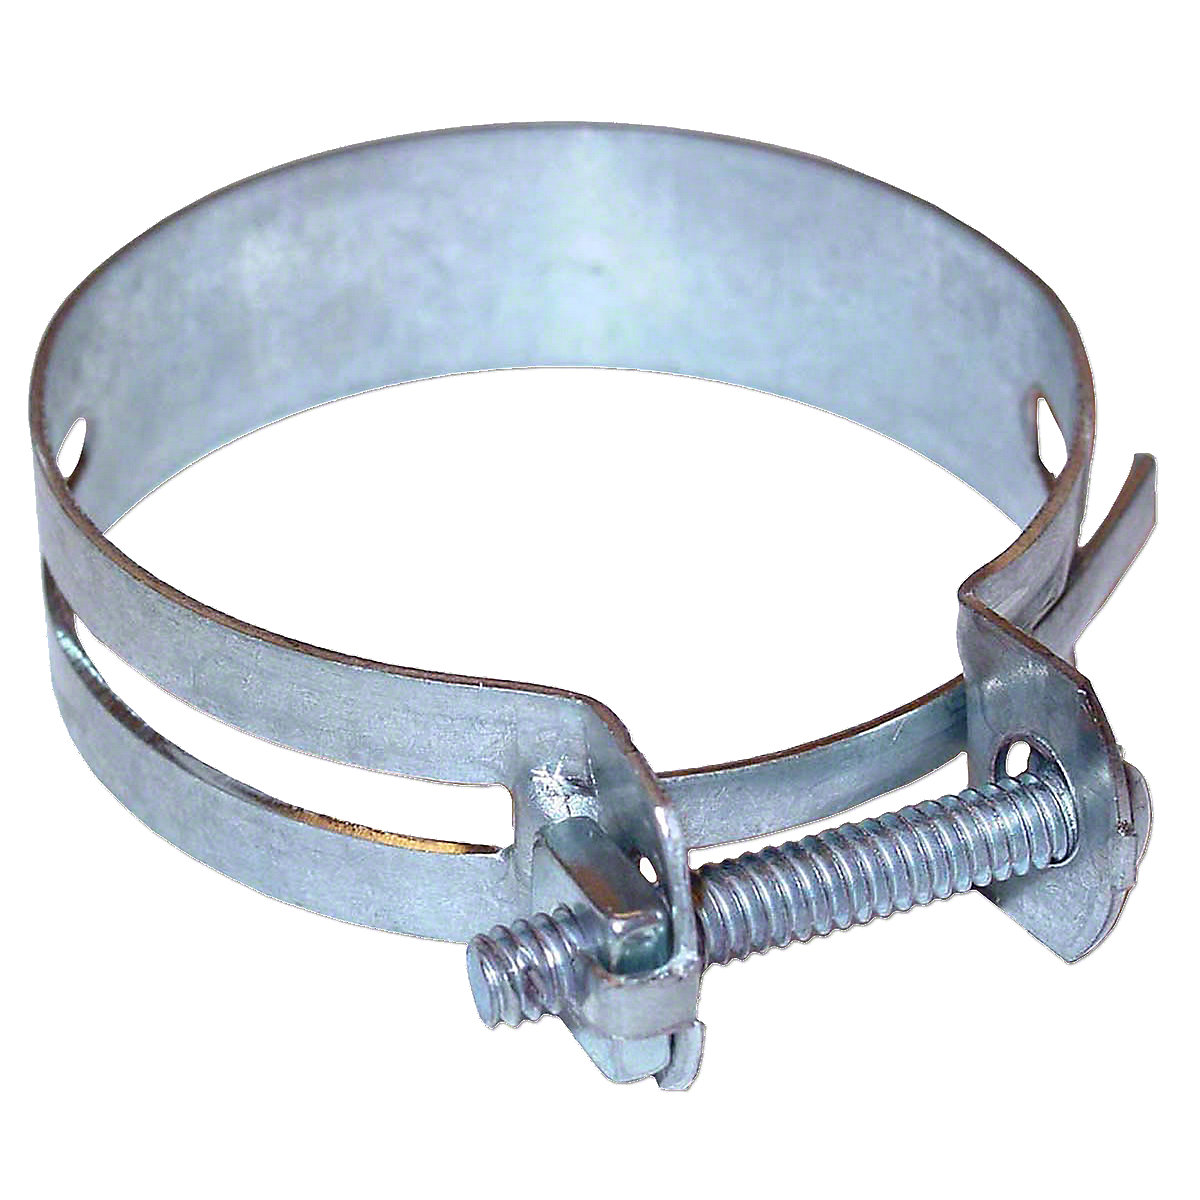 Hose Clamp For Massey Ferguson: TO35, 40, TE20, TO20, TO30, 50, 135, 35, 235, Massey Harris: 50.